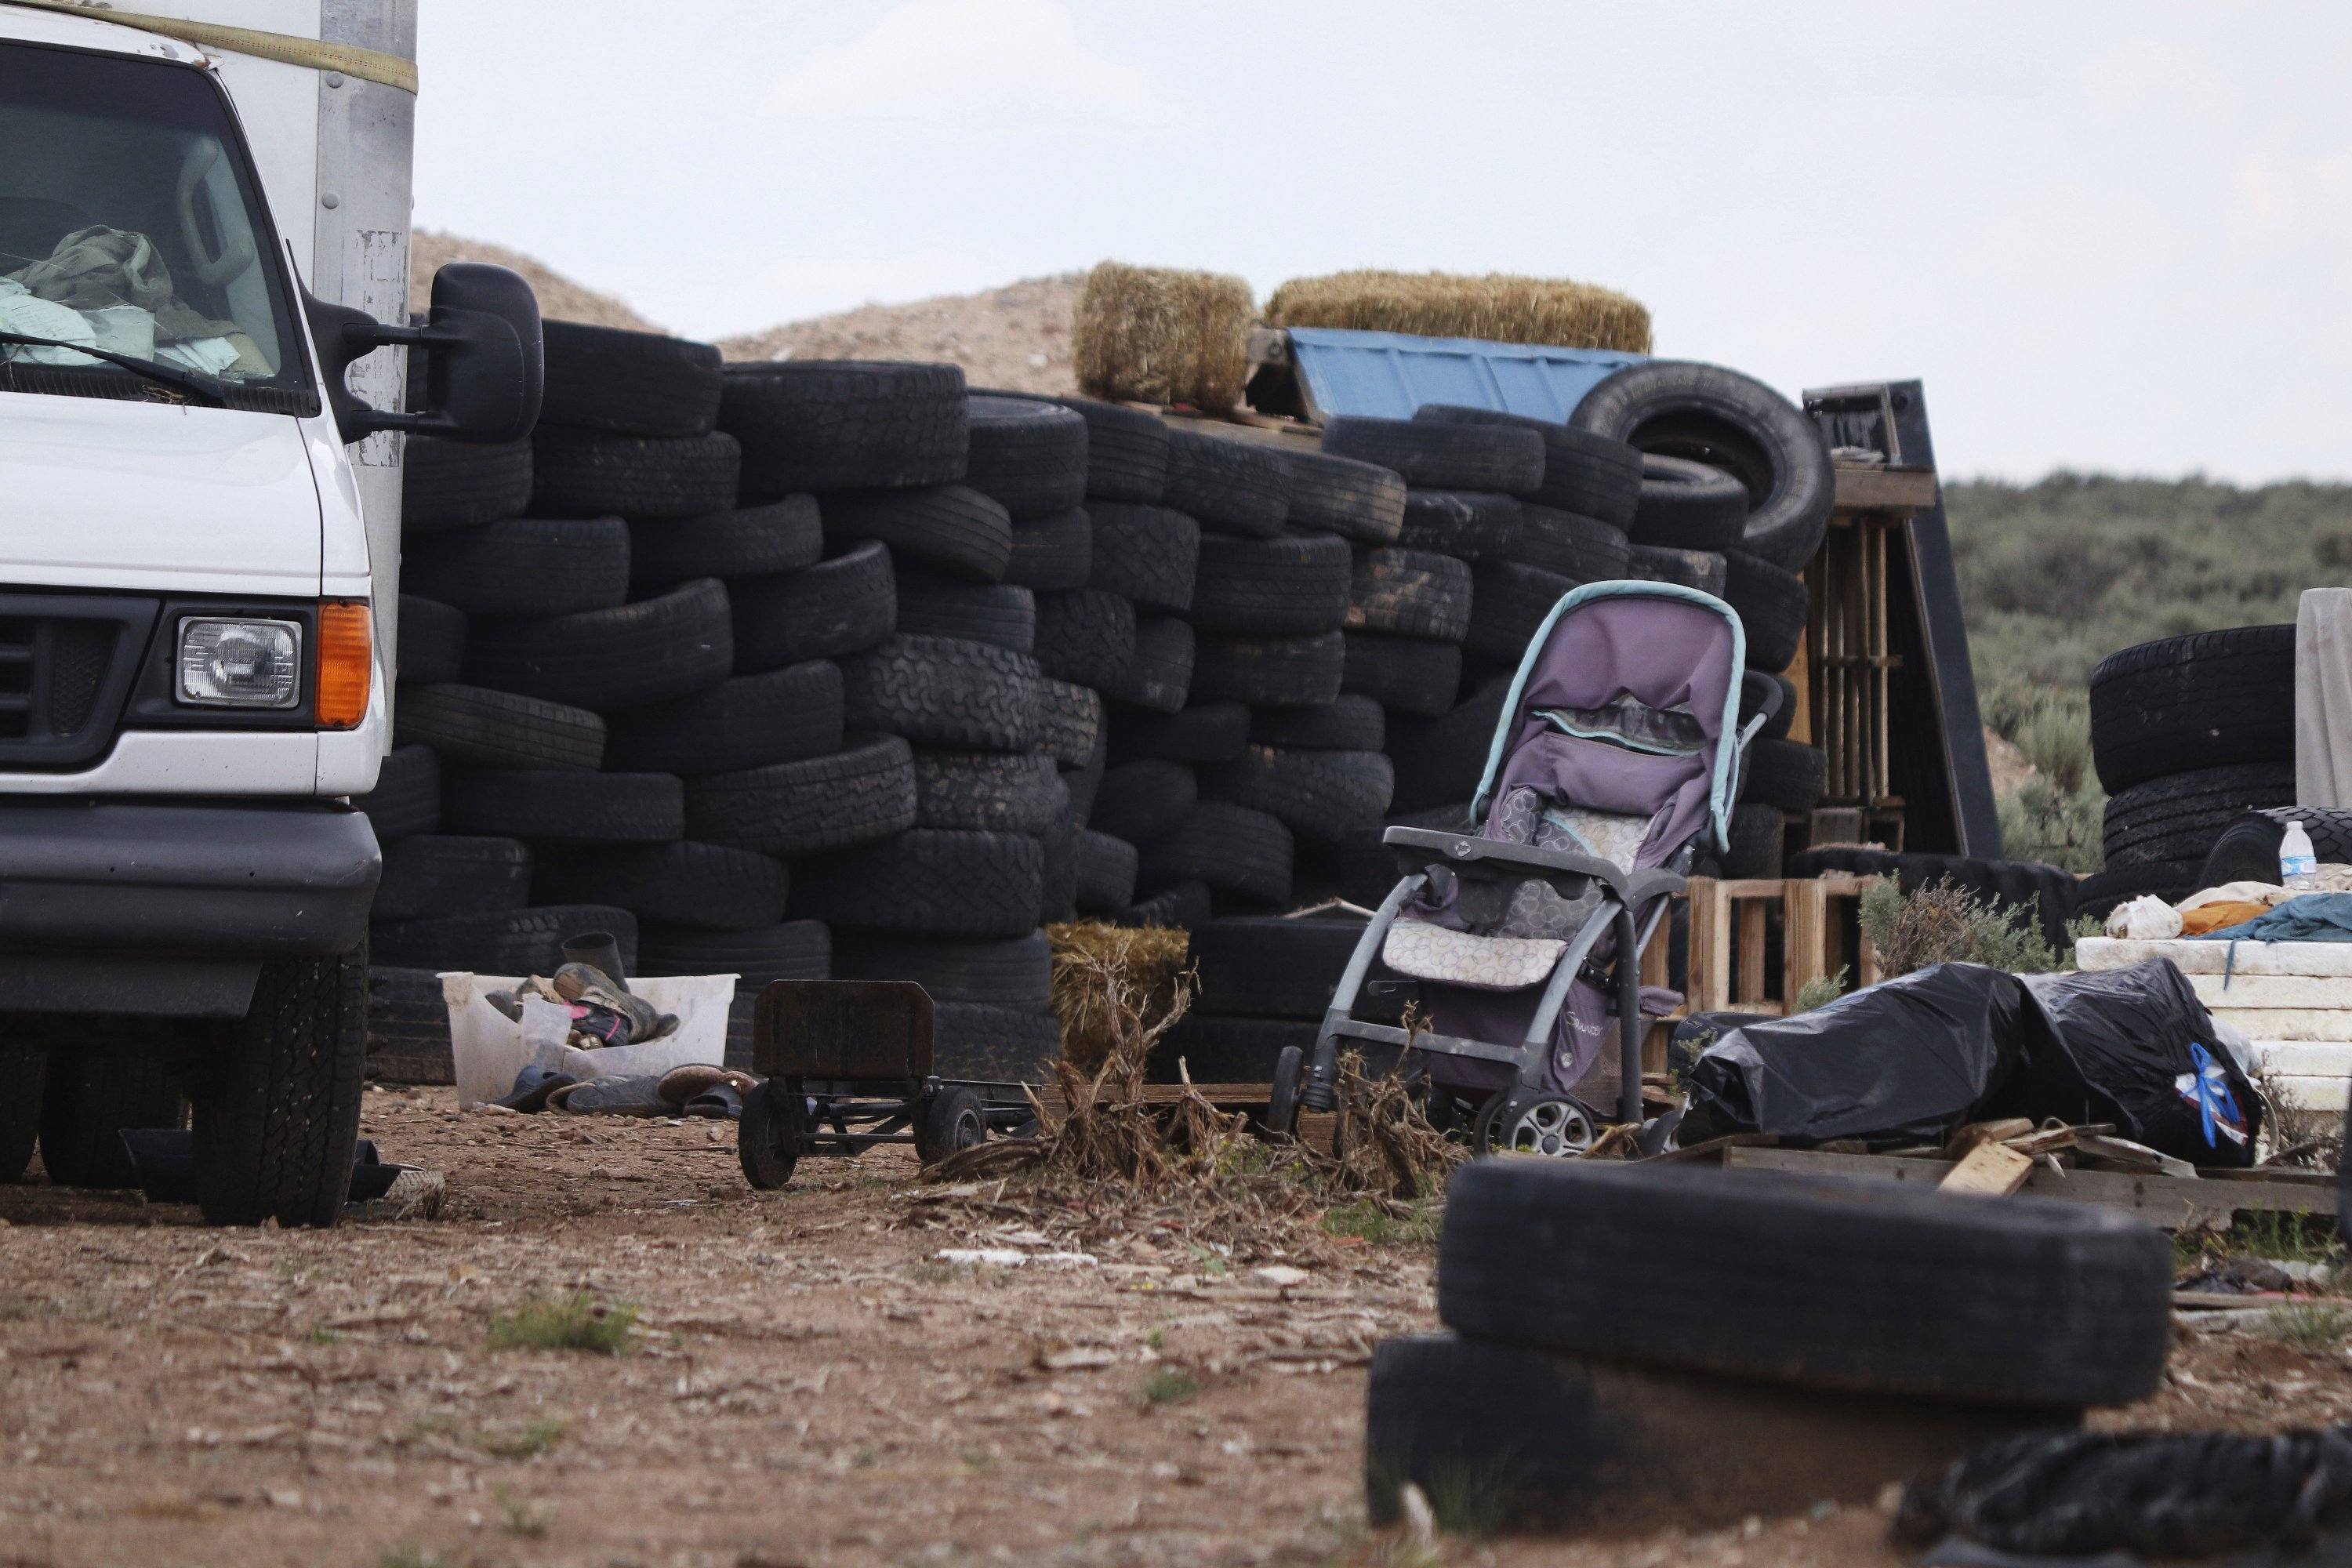 Boy's remains found at New Mexico desert compound